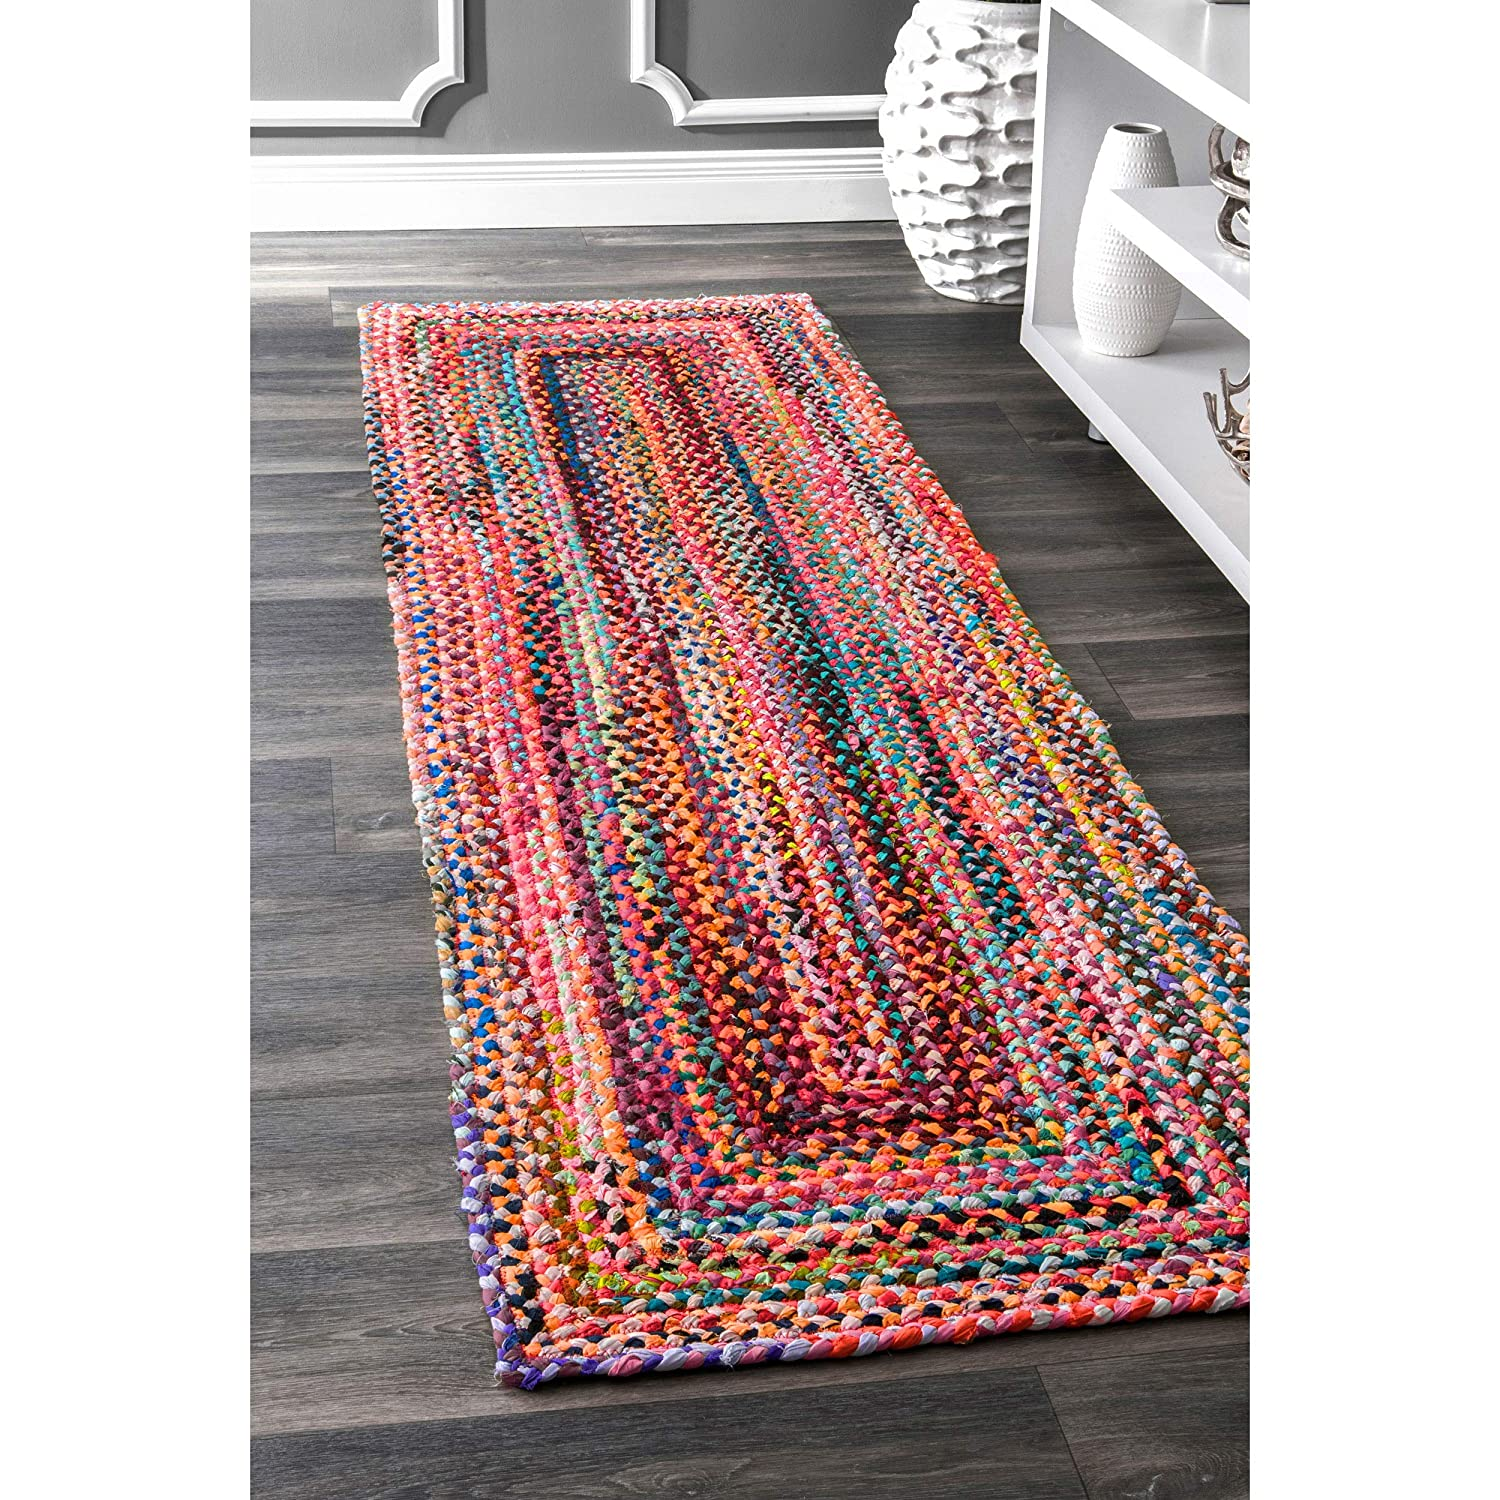 nuLOOM Handmade Casual Cotton Braided Area Rugs, 2' x 3', Multicolor 2' x 3' MGNM04A